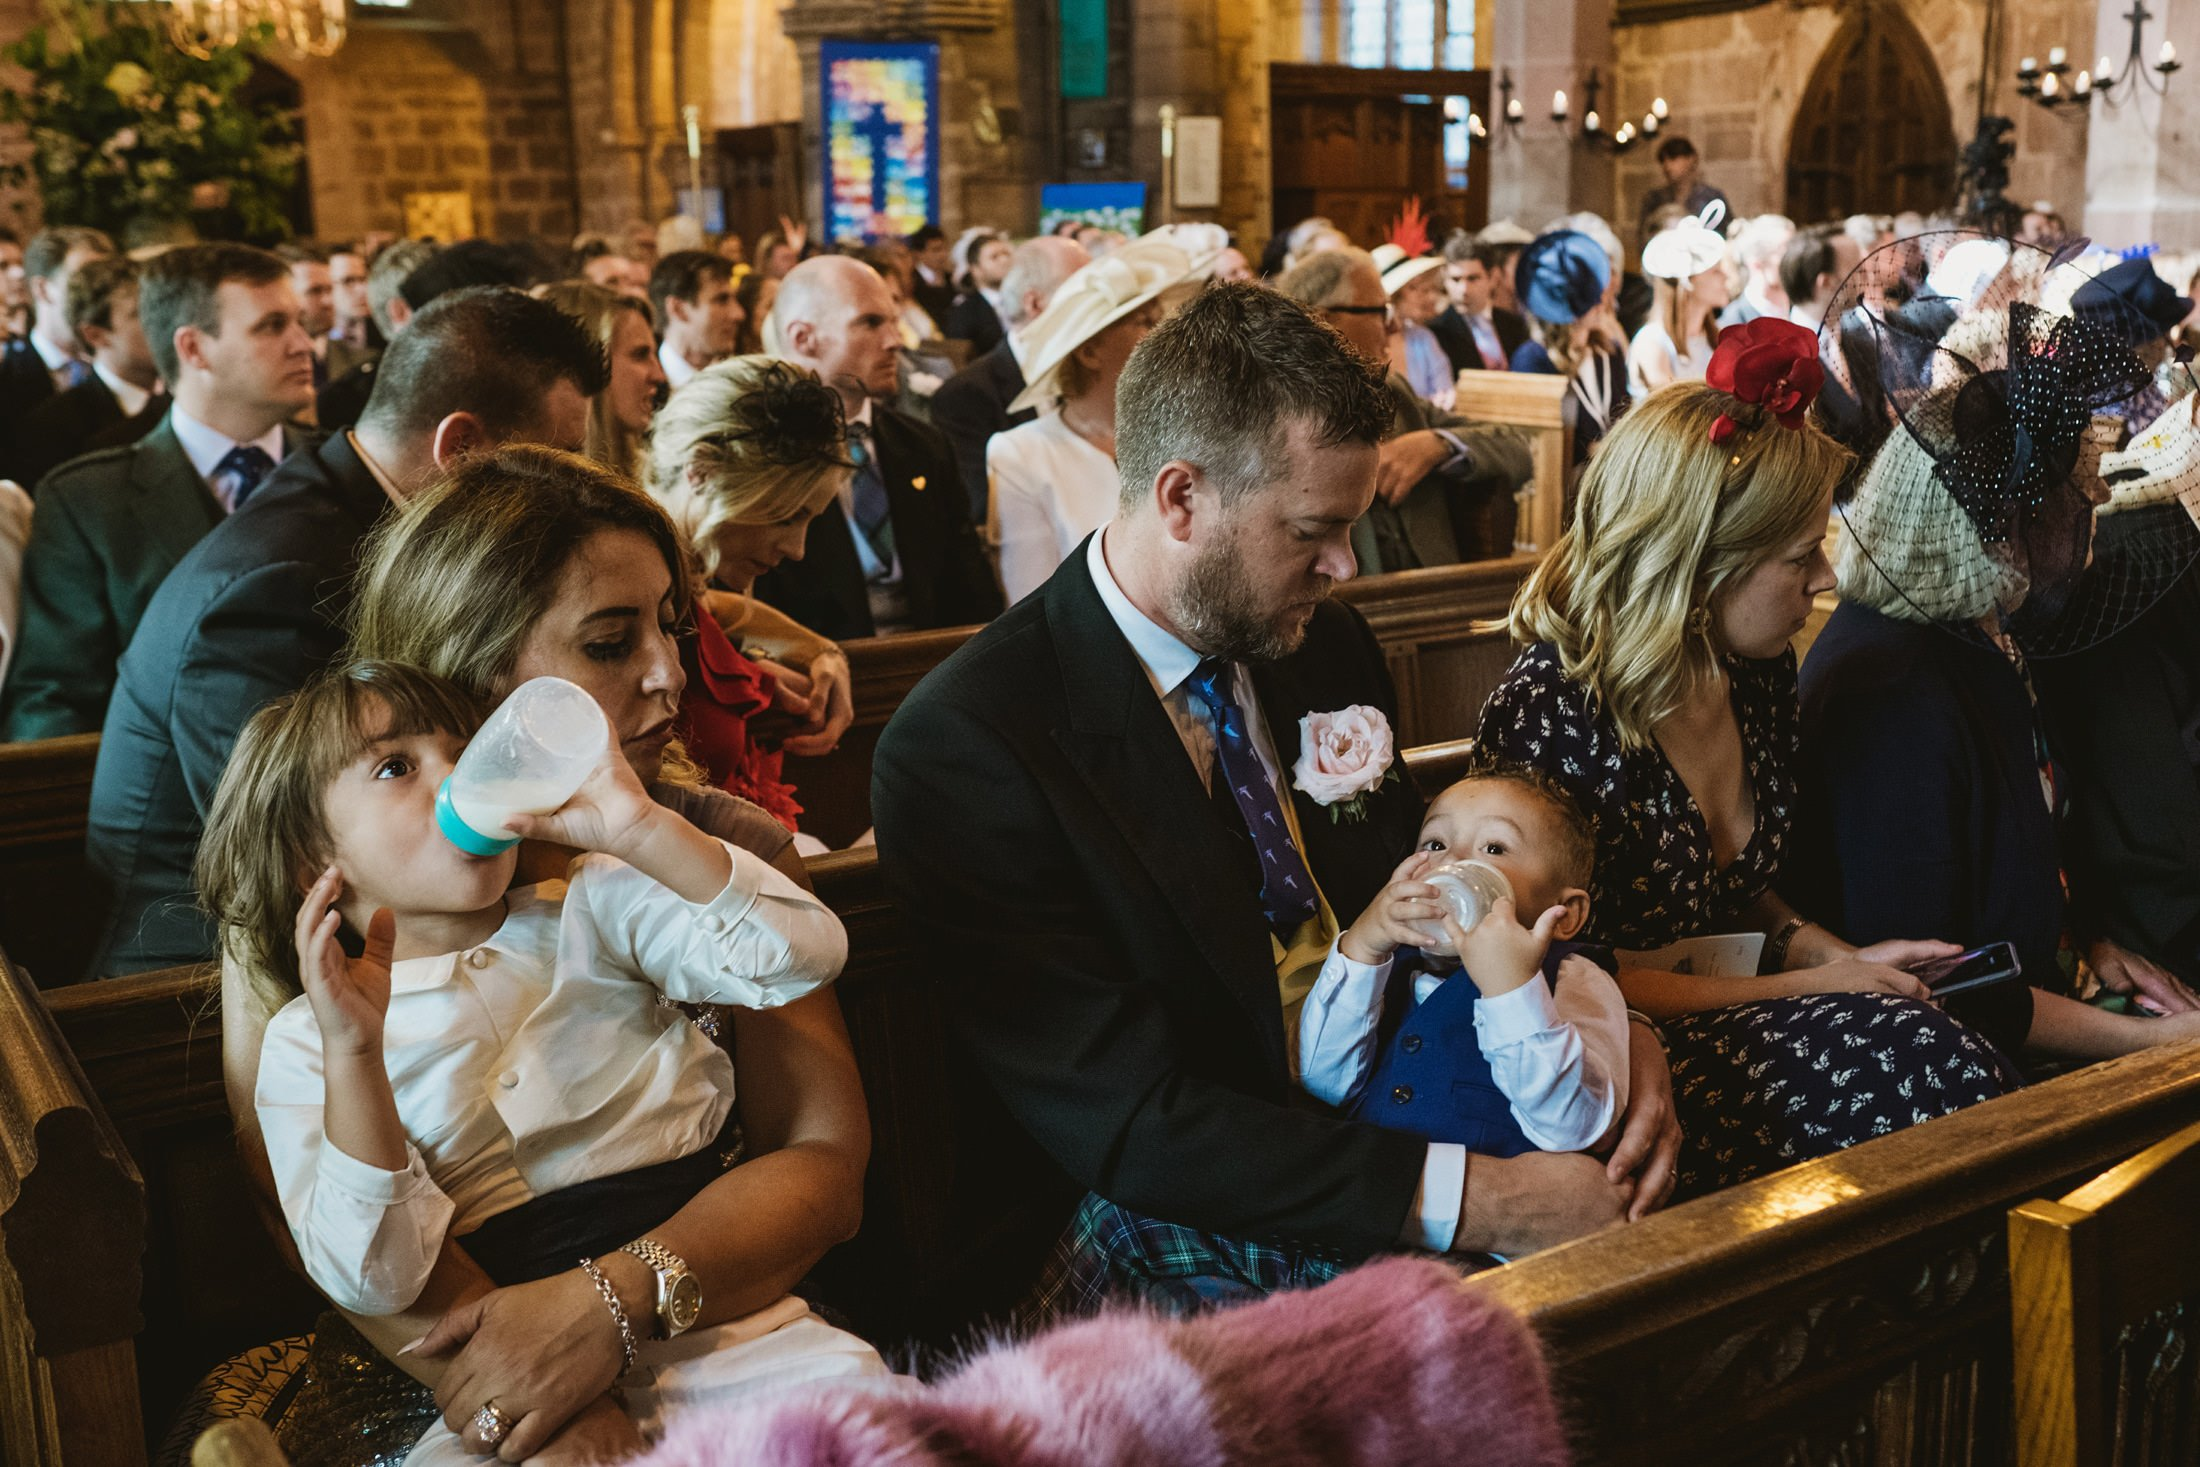 Wedding guests during the service